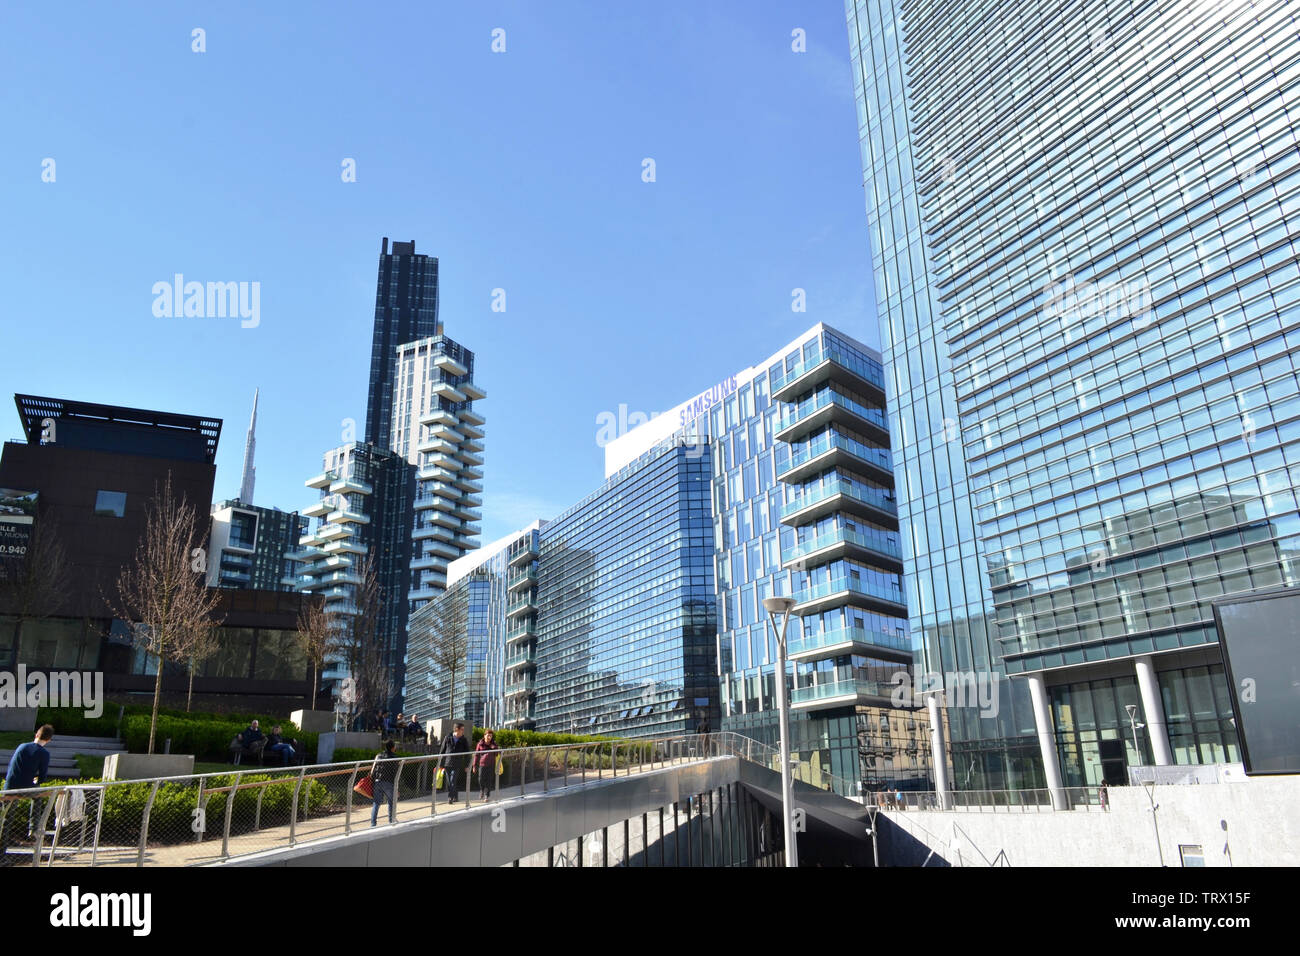 Milan/Italy - March, 28, 2015: Modern highly technological look of the new managerial district Porta Nuova and view to garden and passage. Stock Photo